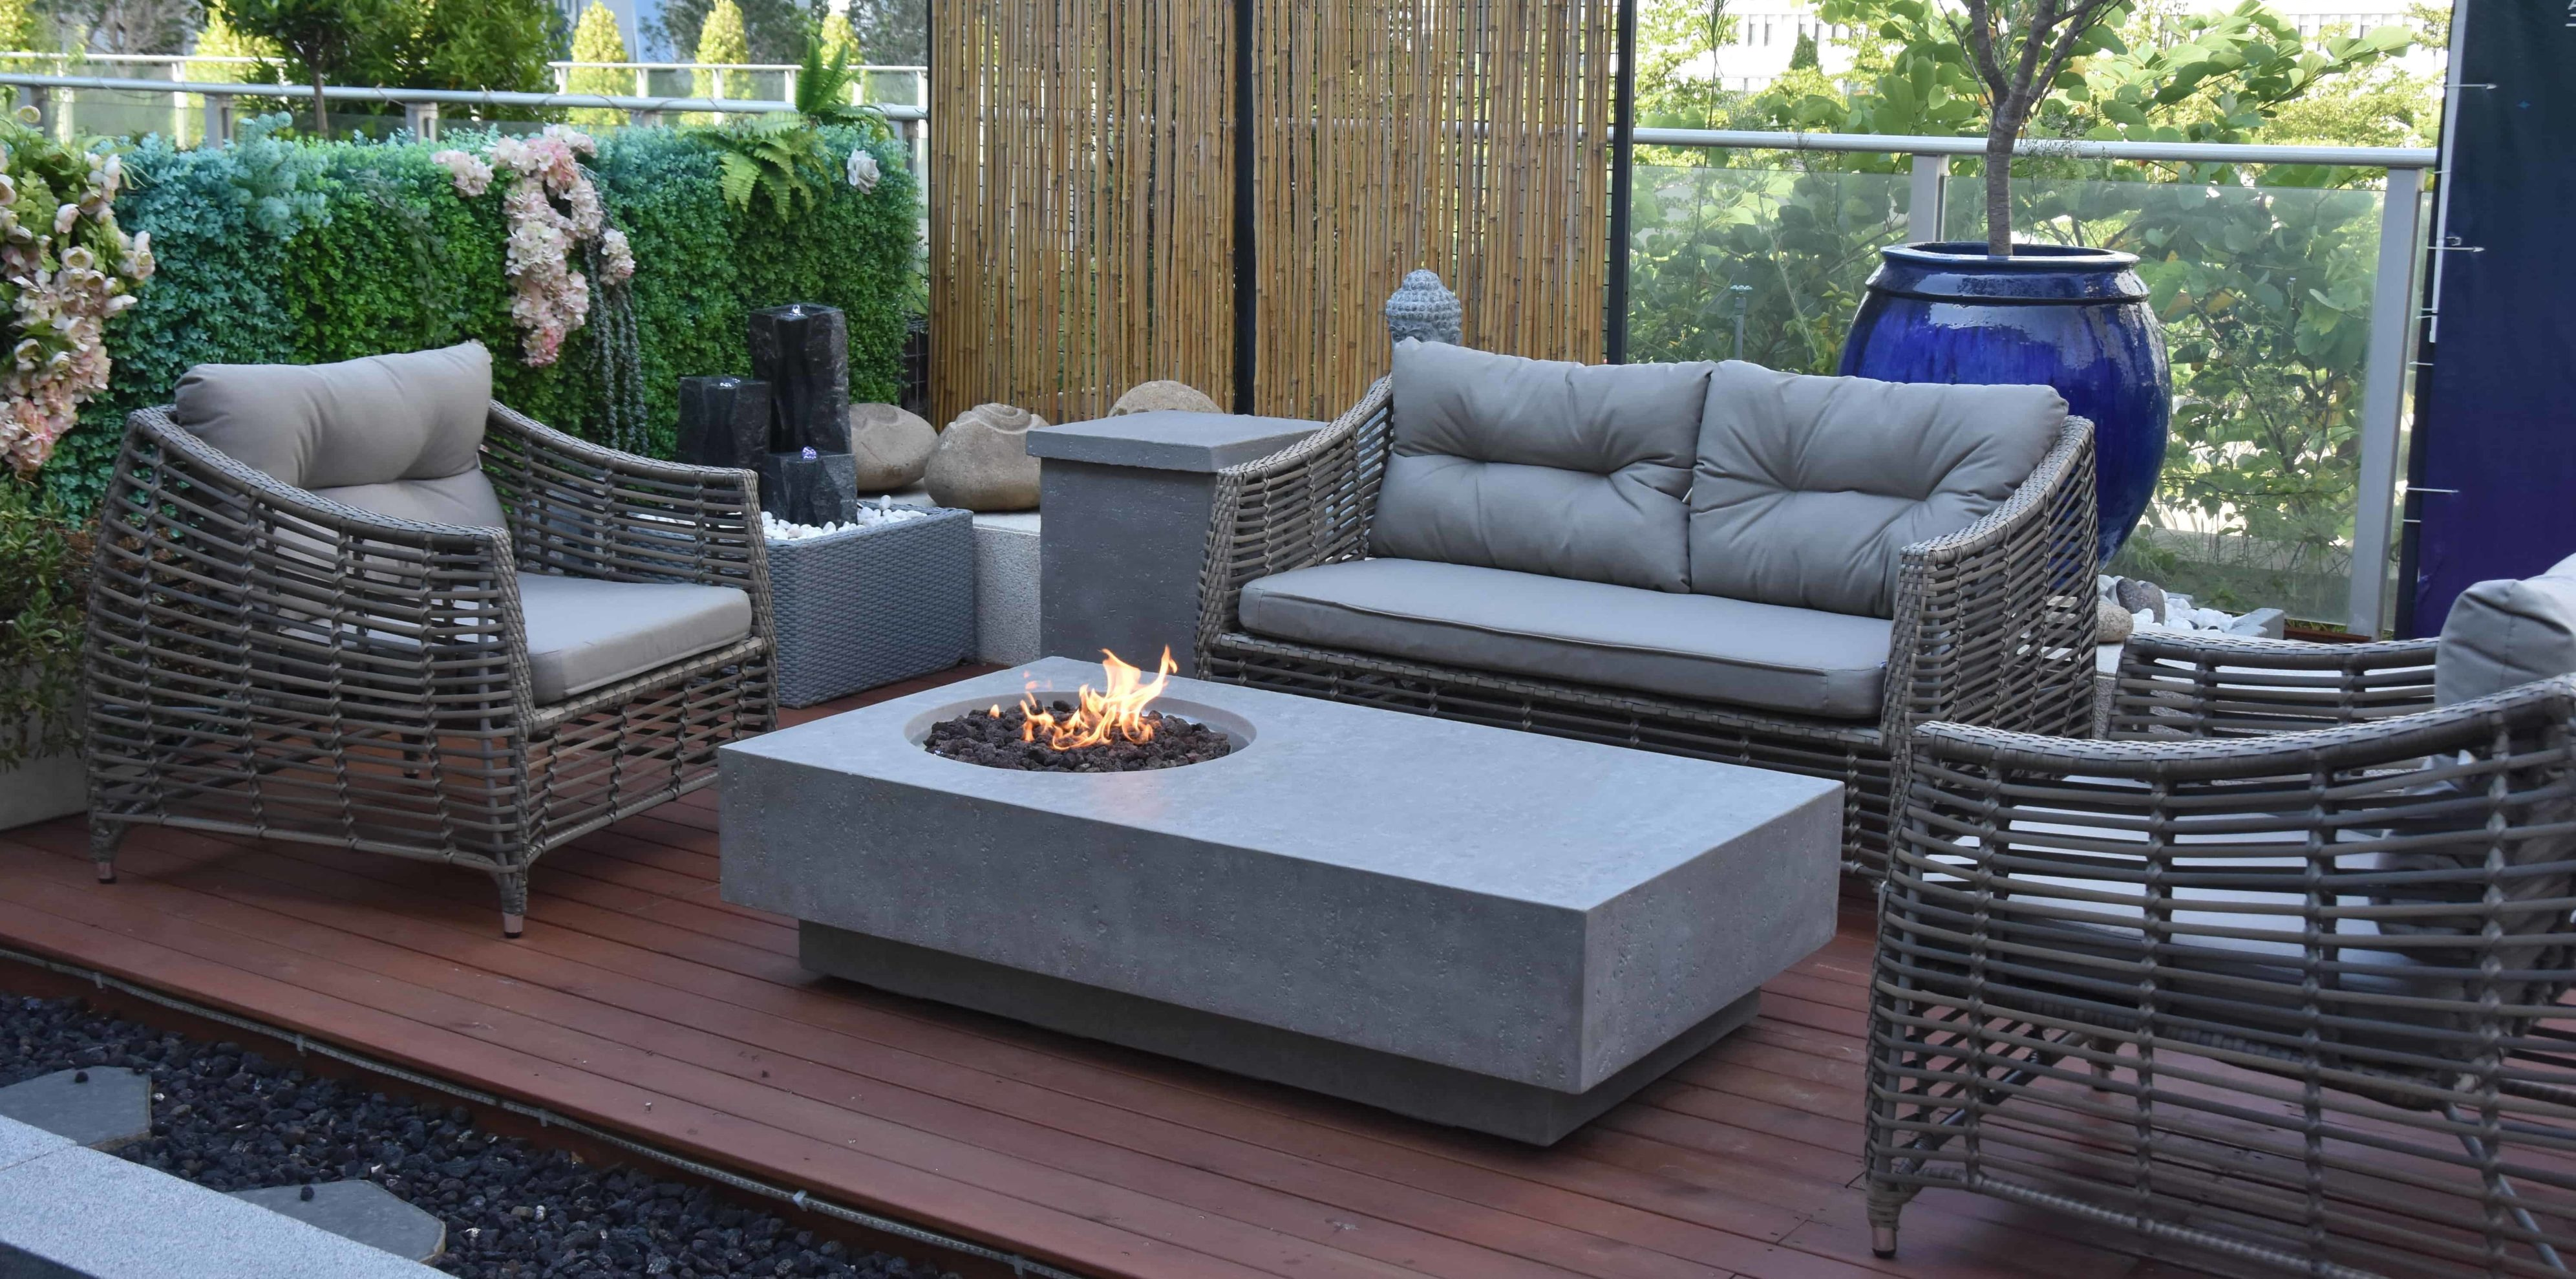 Athens Outdoor Gas Fire Pit